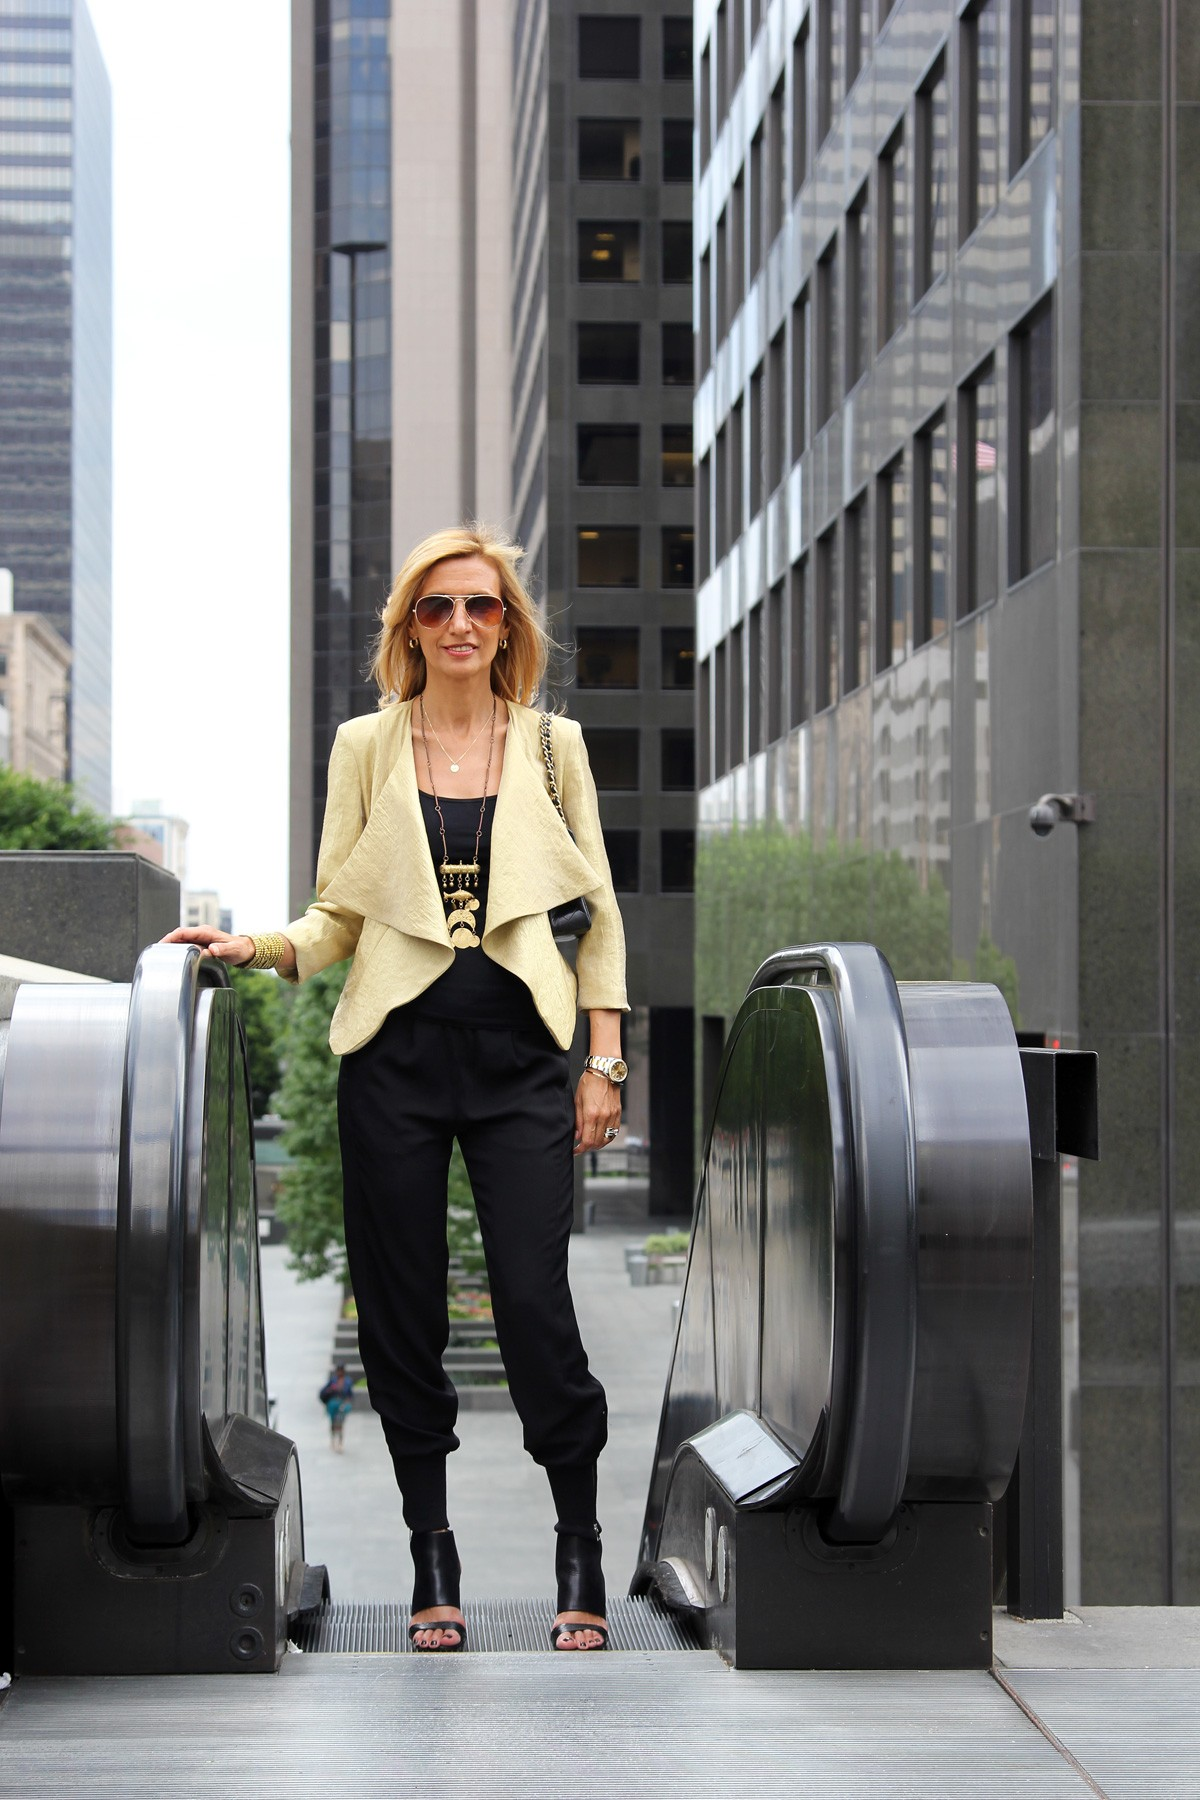 visiting-downtown-los-angeles-wearing-my-soleil-jacket-www.jacketsociety.com(1)